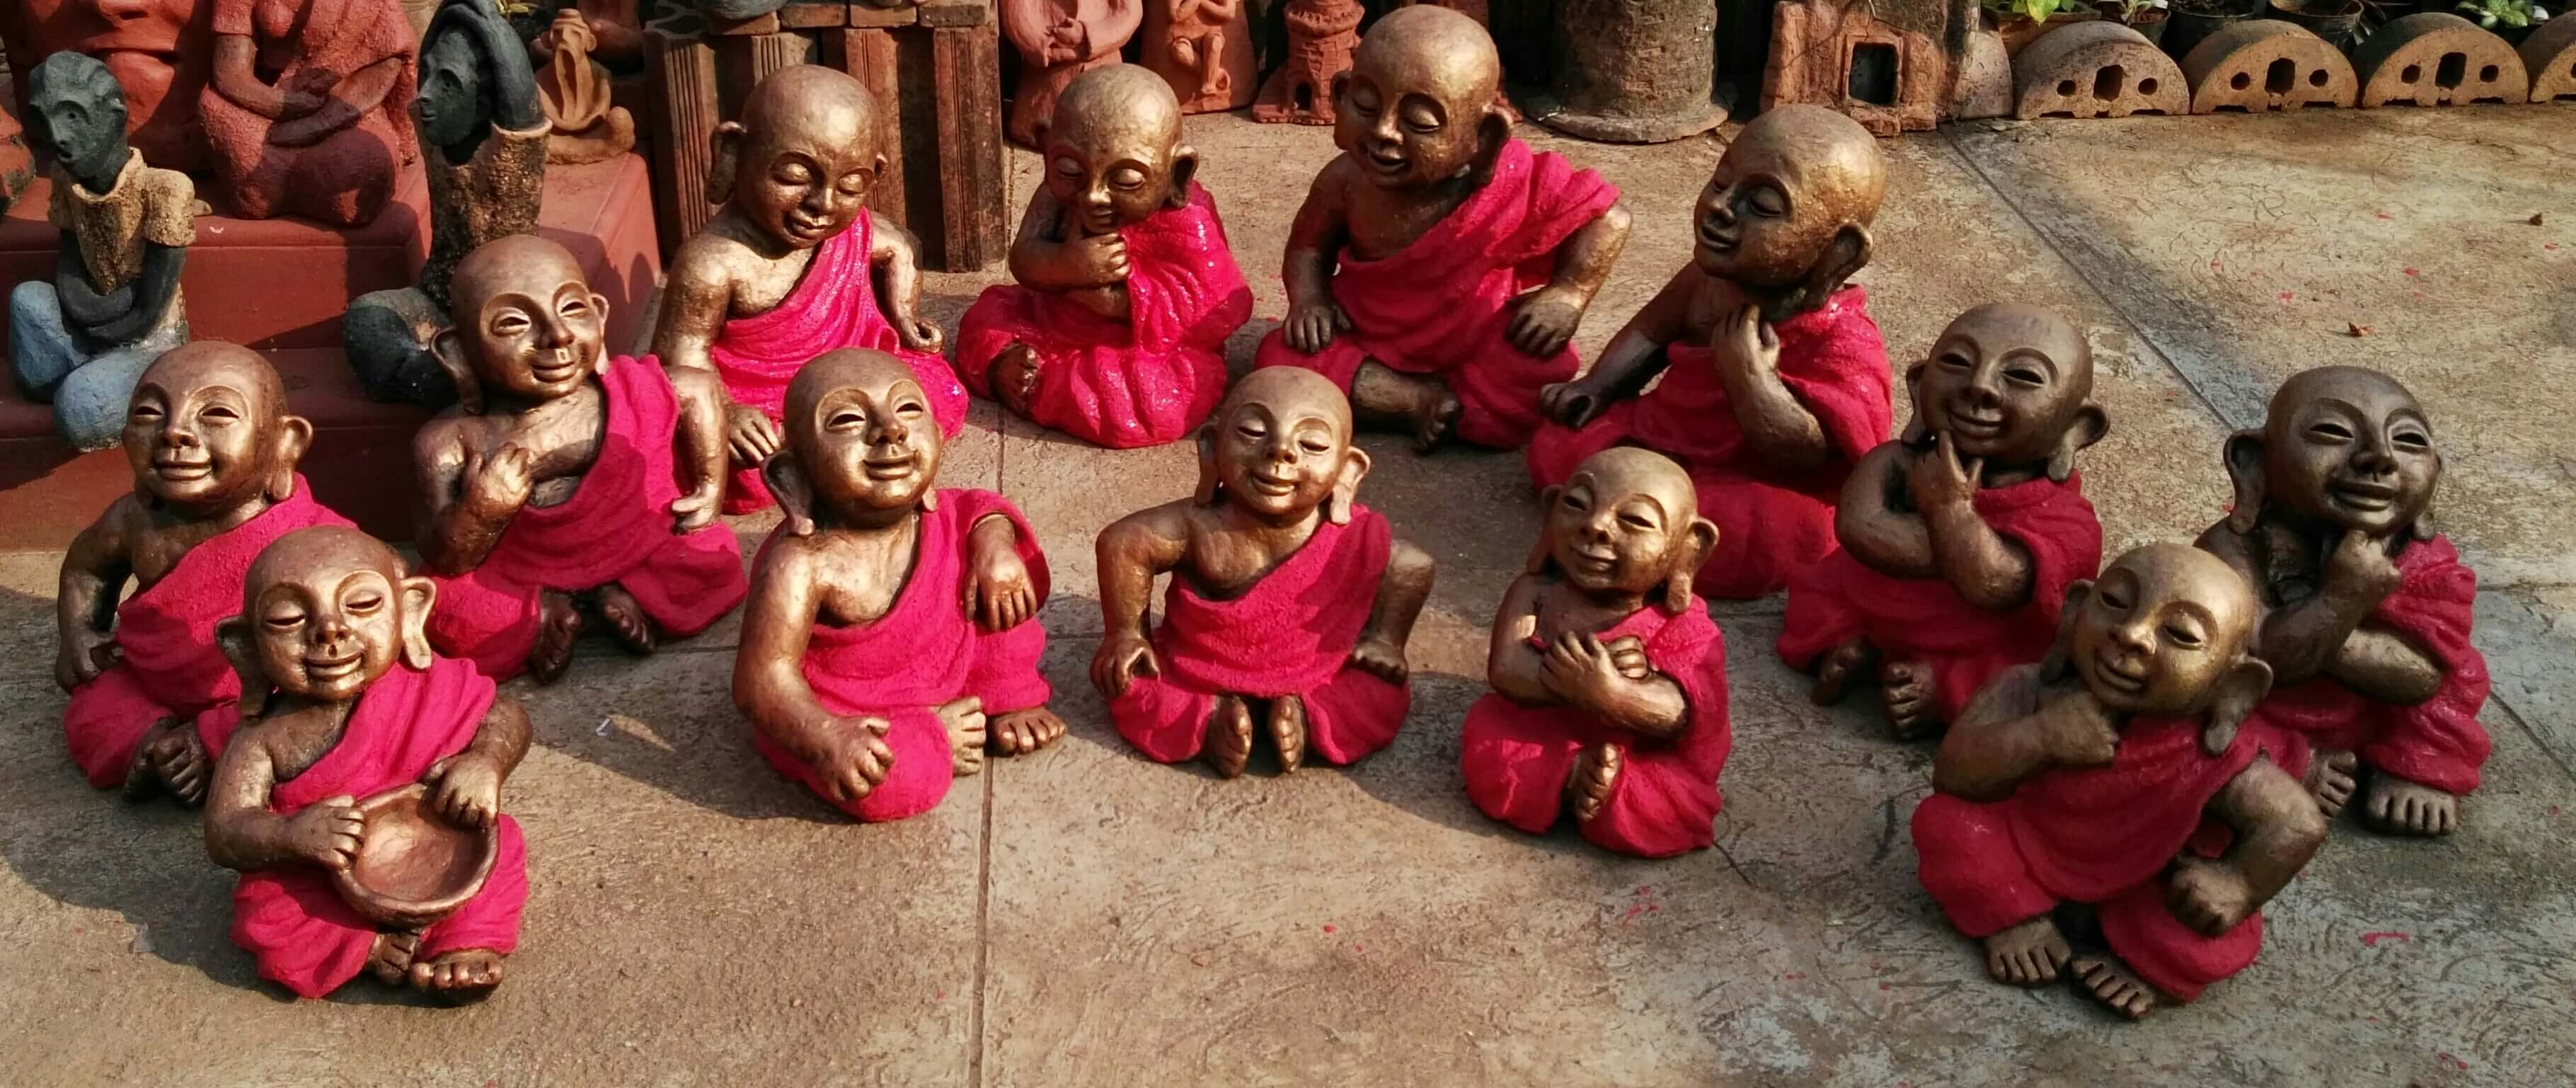 Buddhists Monks - by Terracotta artist Venki Palimar